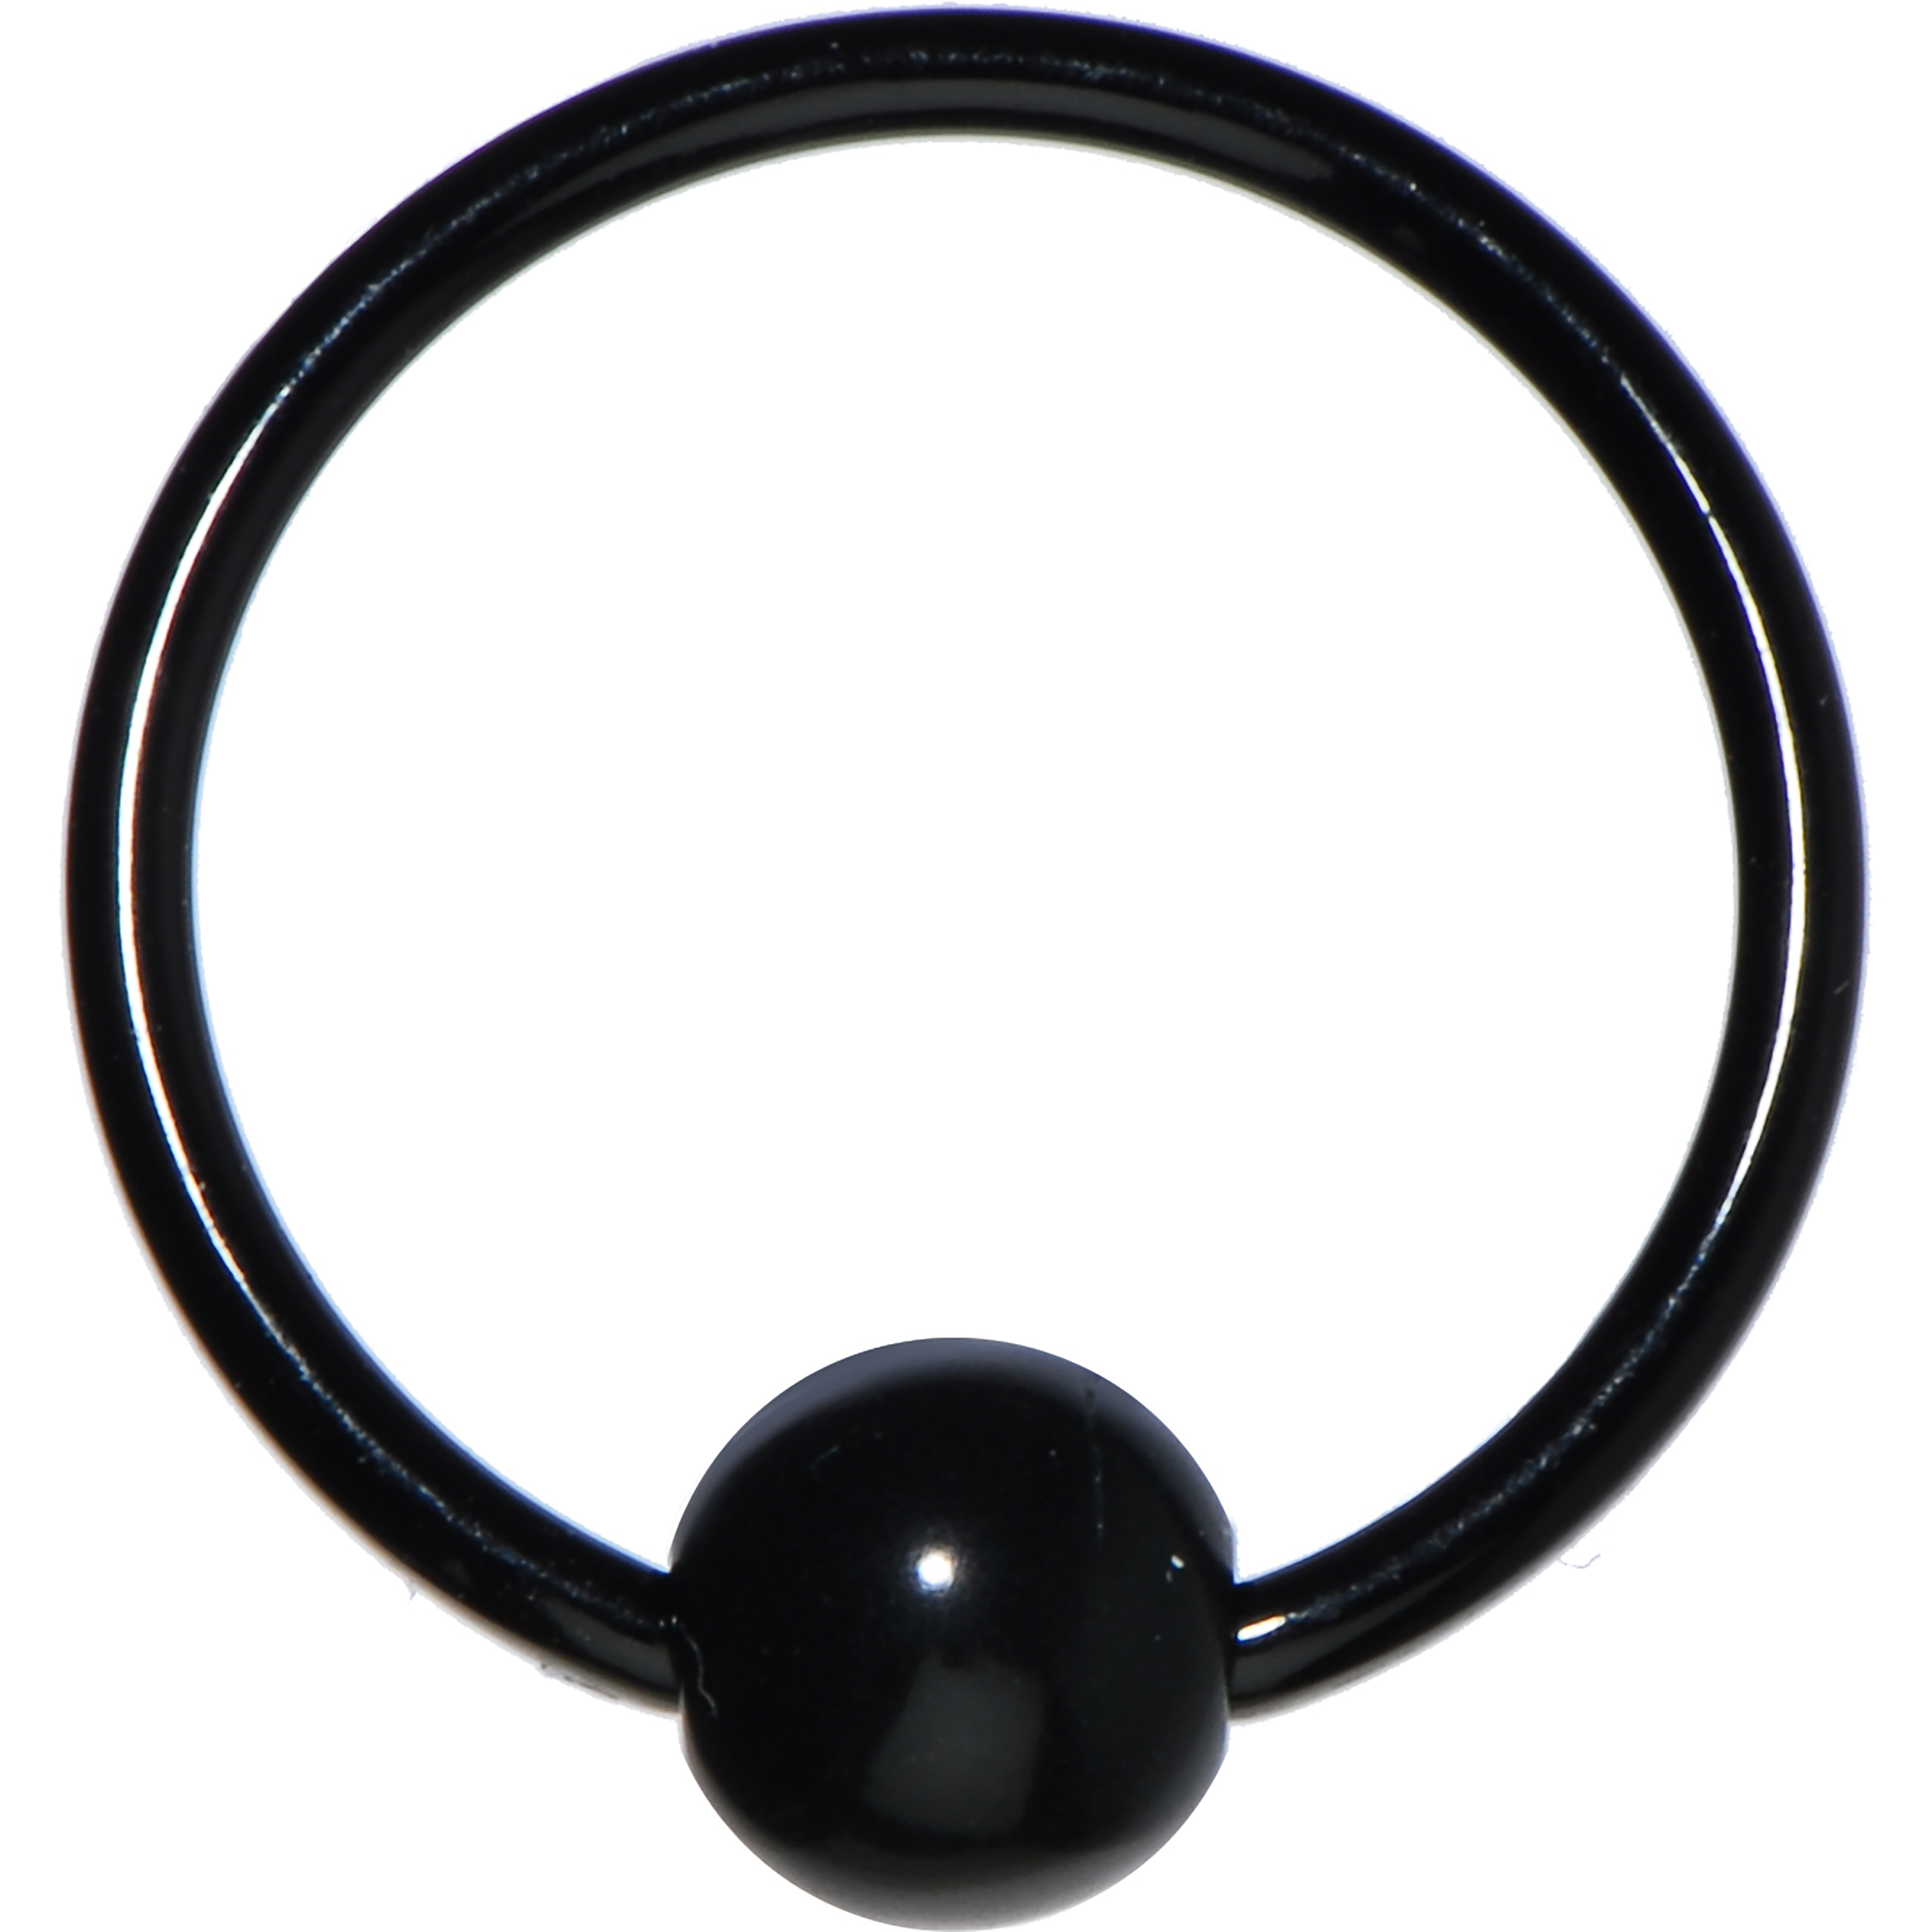 Body Candy Black Acrylic 5mm Ball BCR Captive Ring 16 Gauge 3/8""